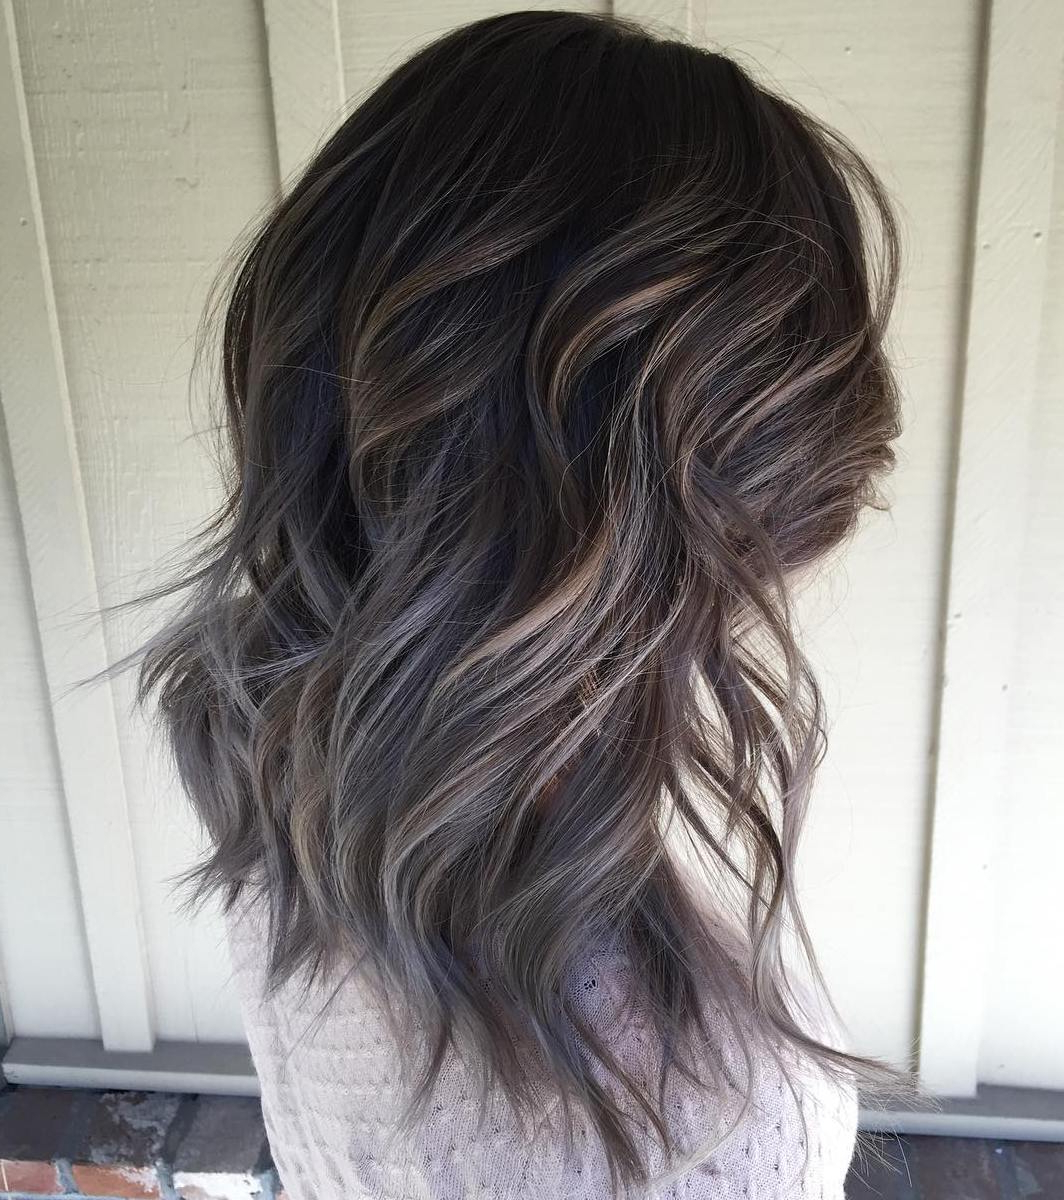 45 Ideas Of Gray And Silver Highlights On Brown Hair Inside Silver And Sophisticated Hairstyles (View 4 of 20)